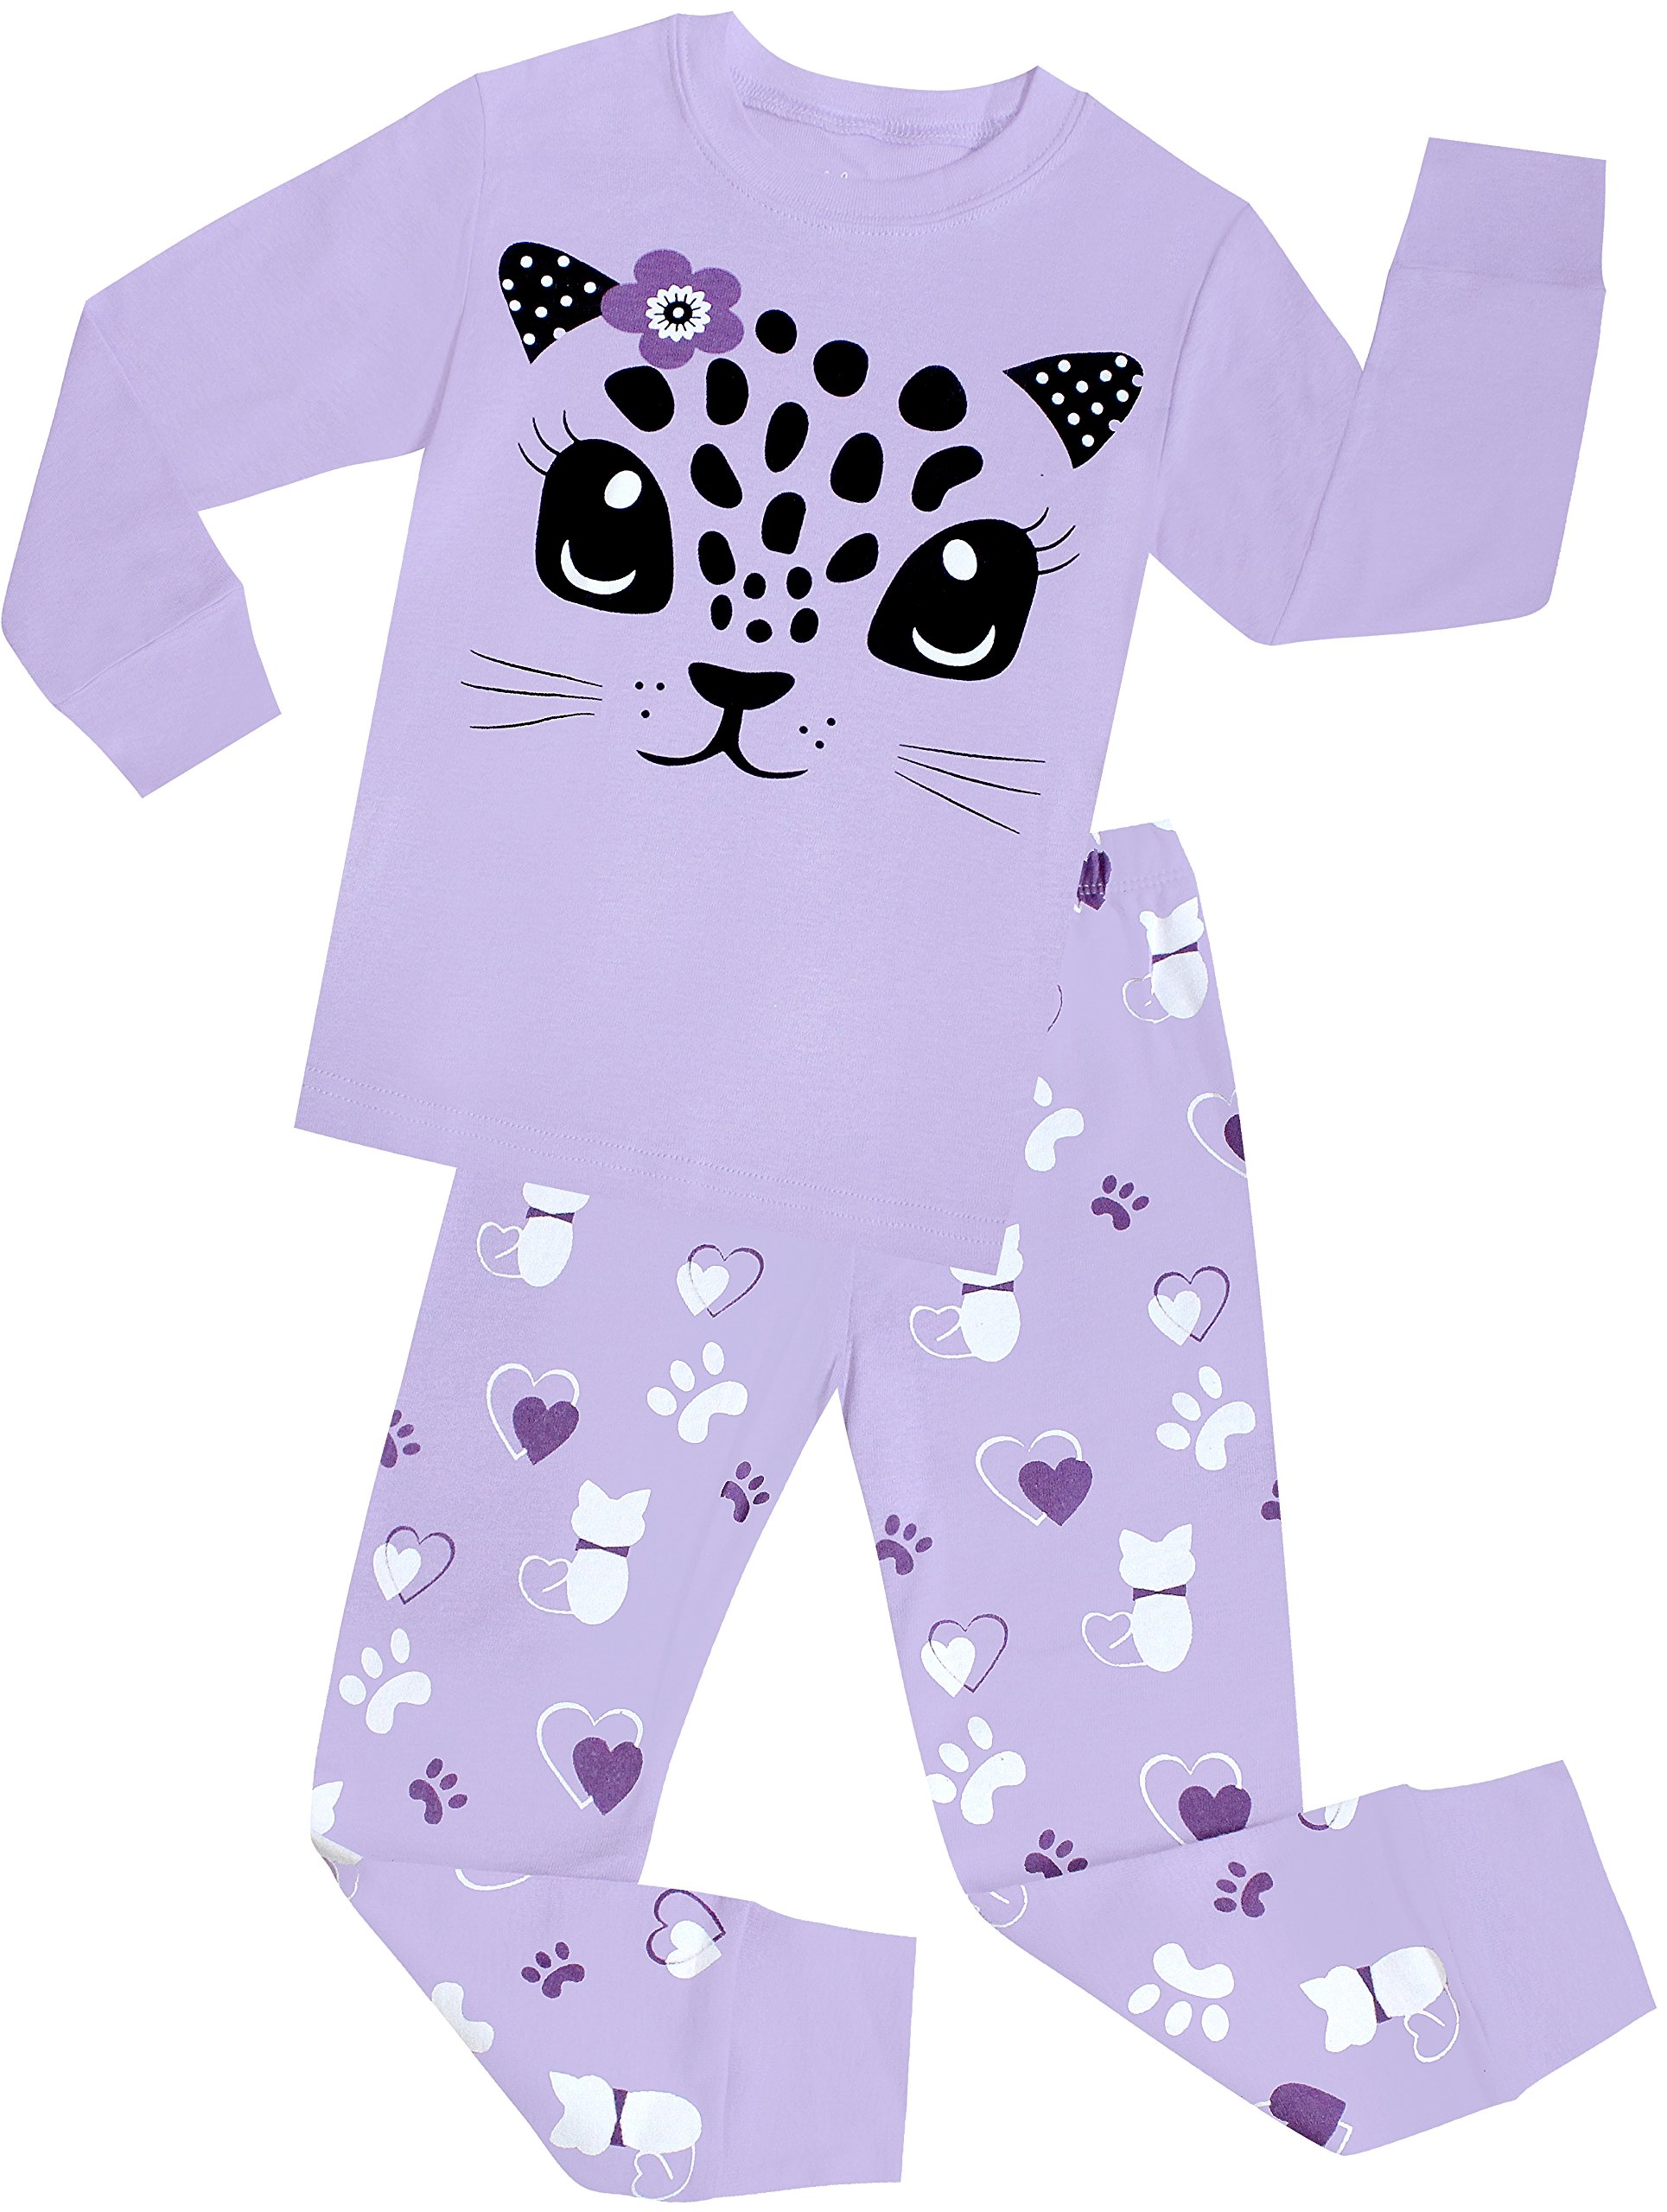 Little Girls Cat Pajamas Set Children Cotton Clothes Christmas Gift Pjs Size 3 Years